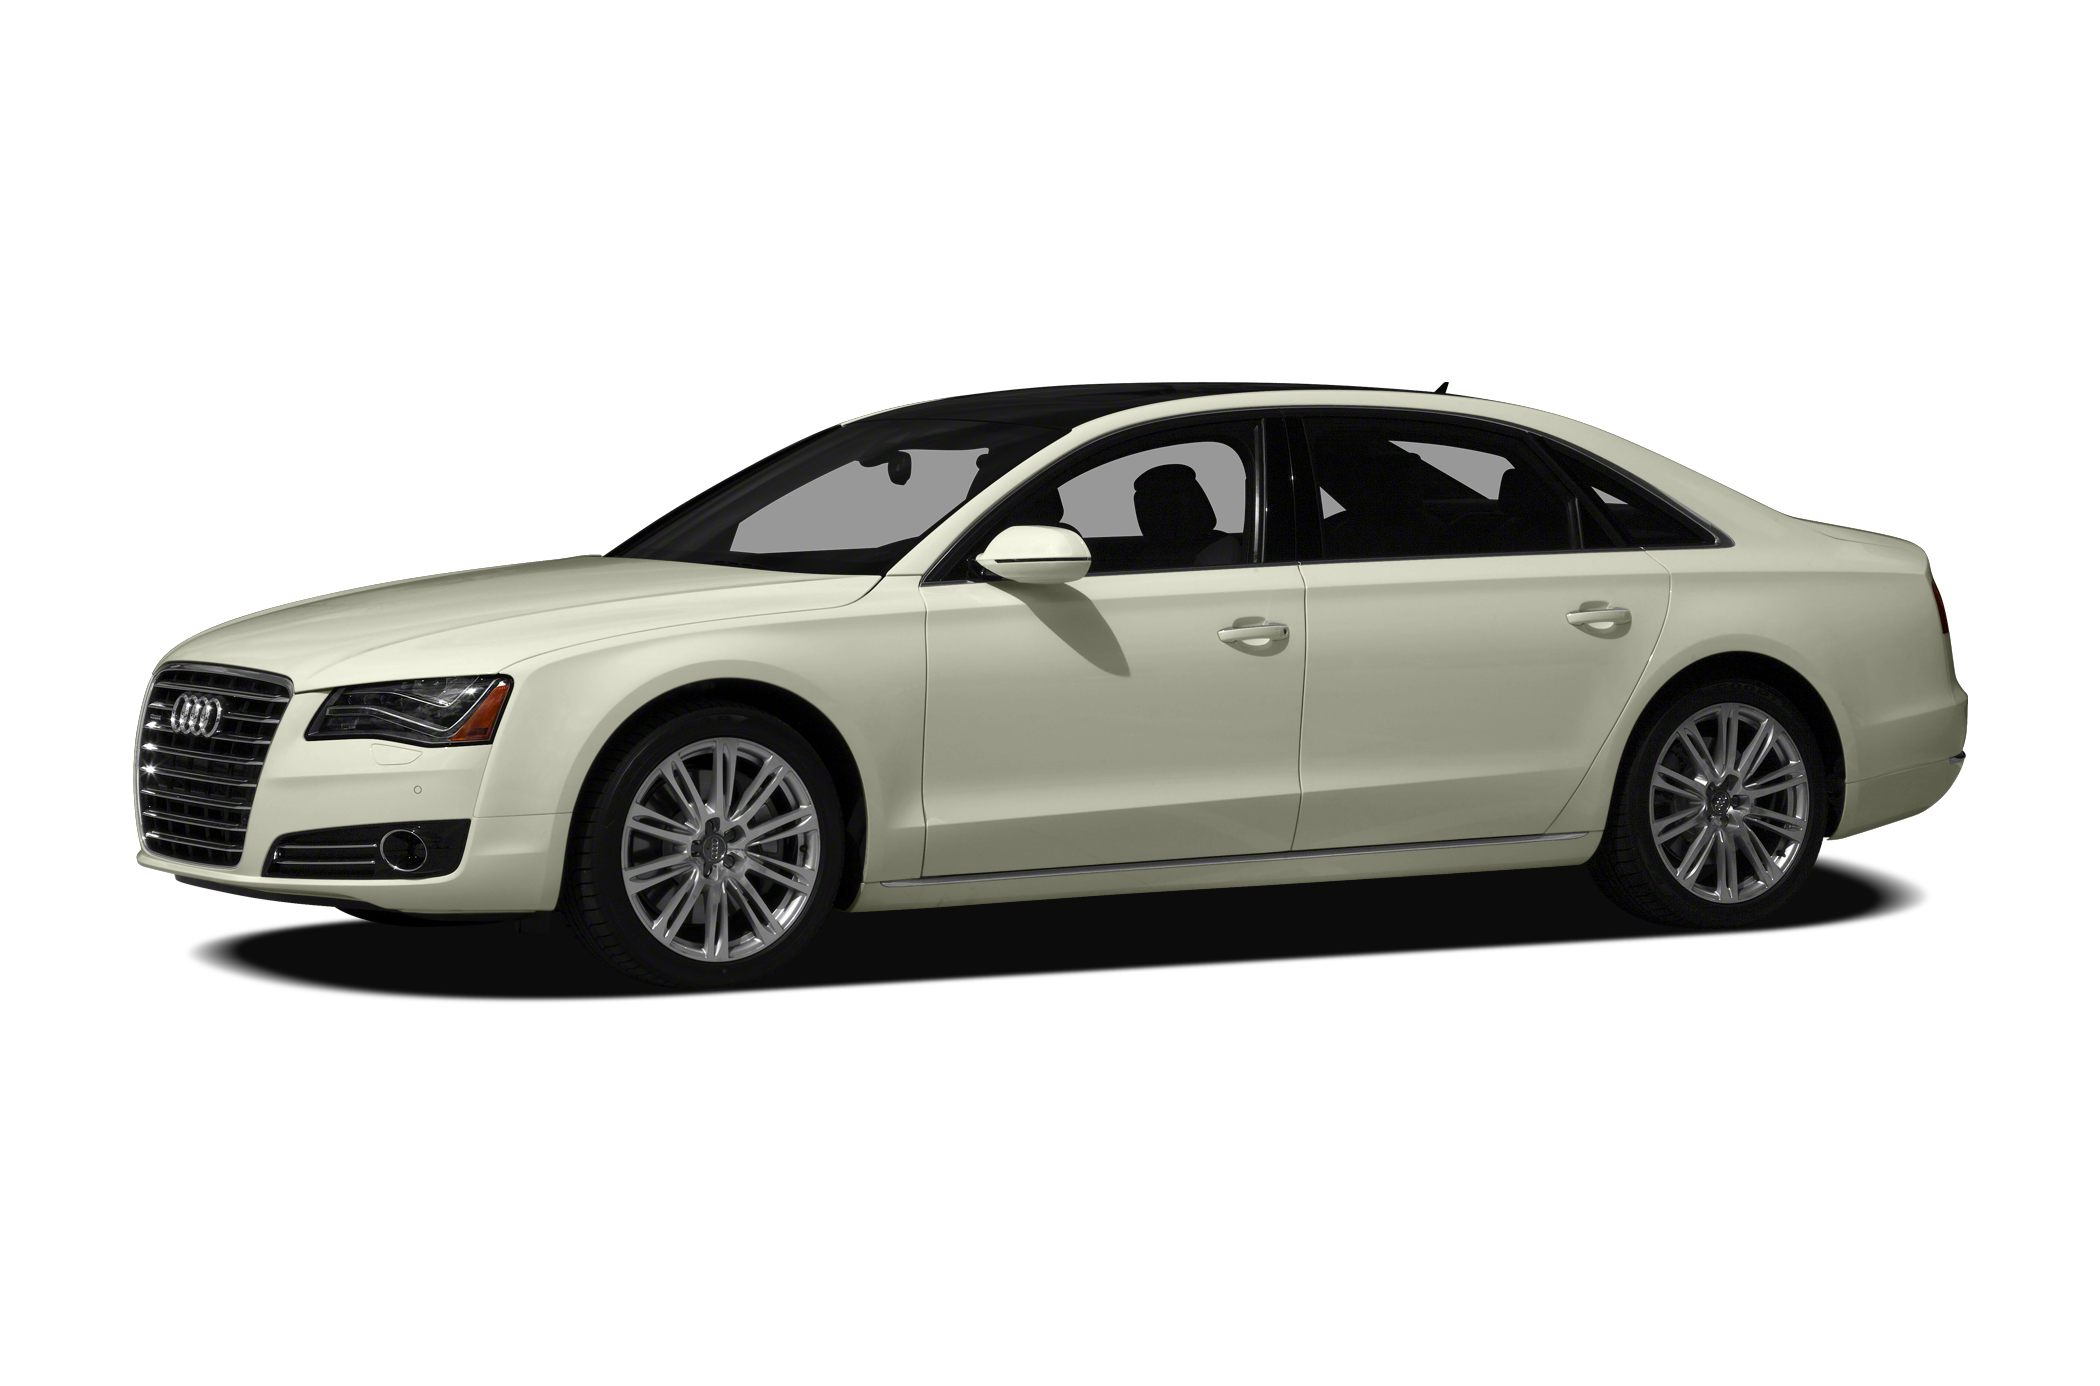 2012 Audi A8 L 4.2 Quattro Sedan for sale in Parsippany for $49,996 with 37,915 miles.